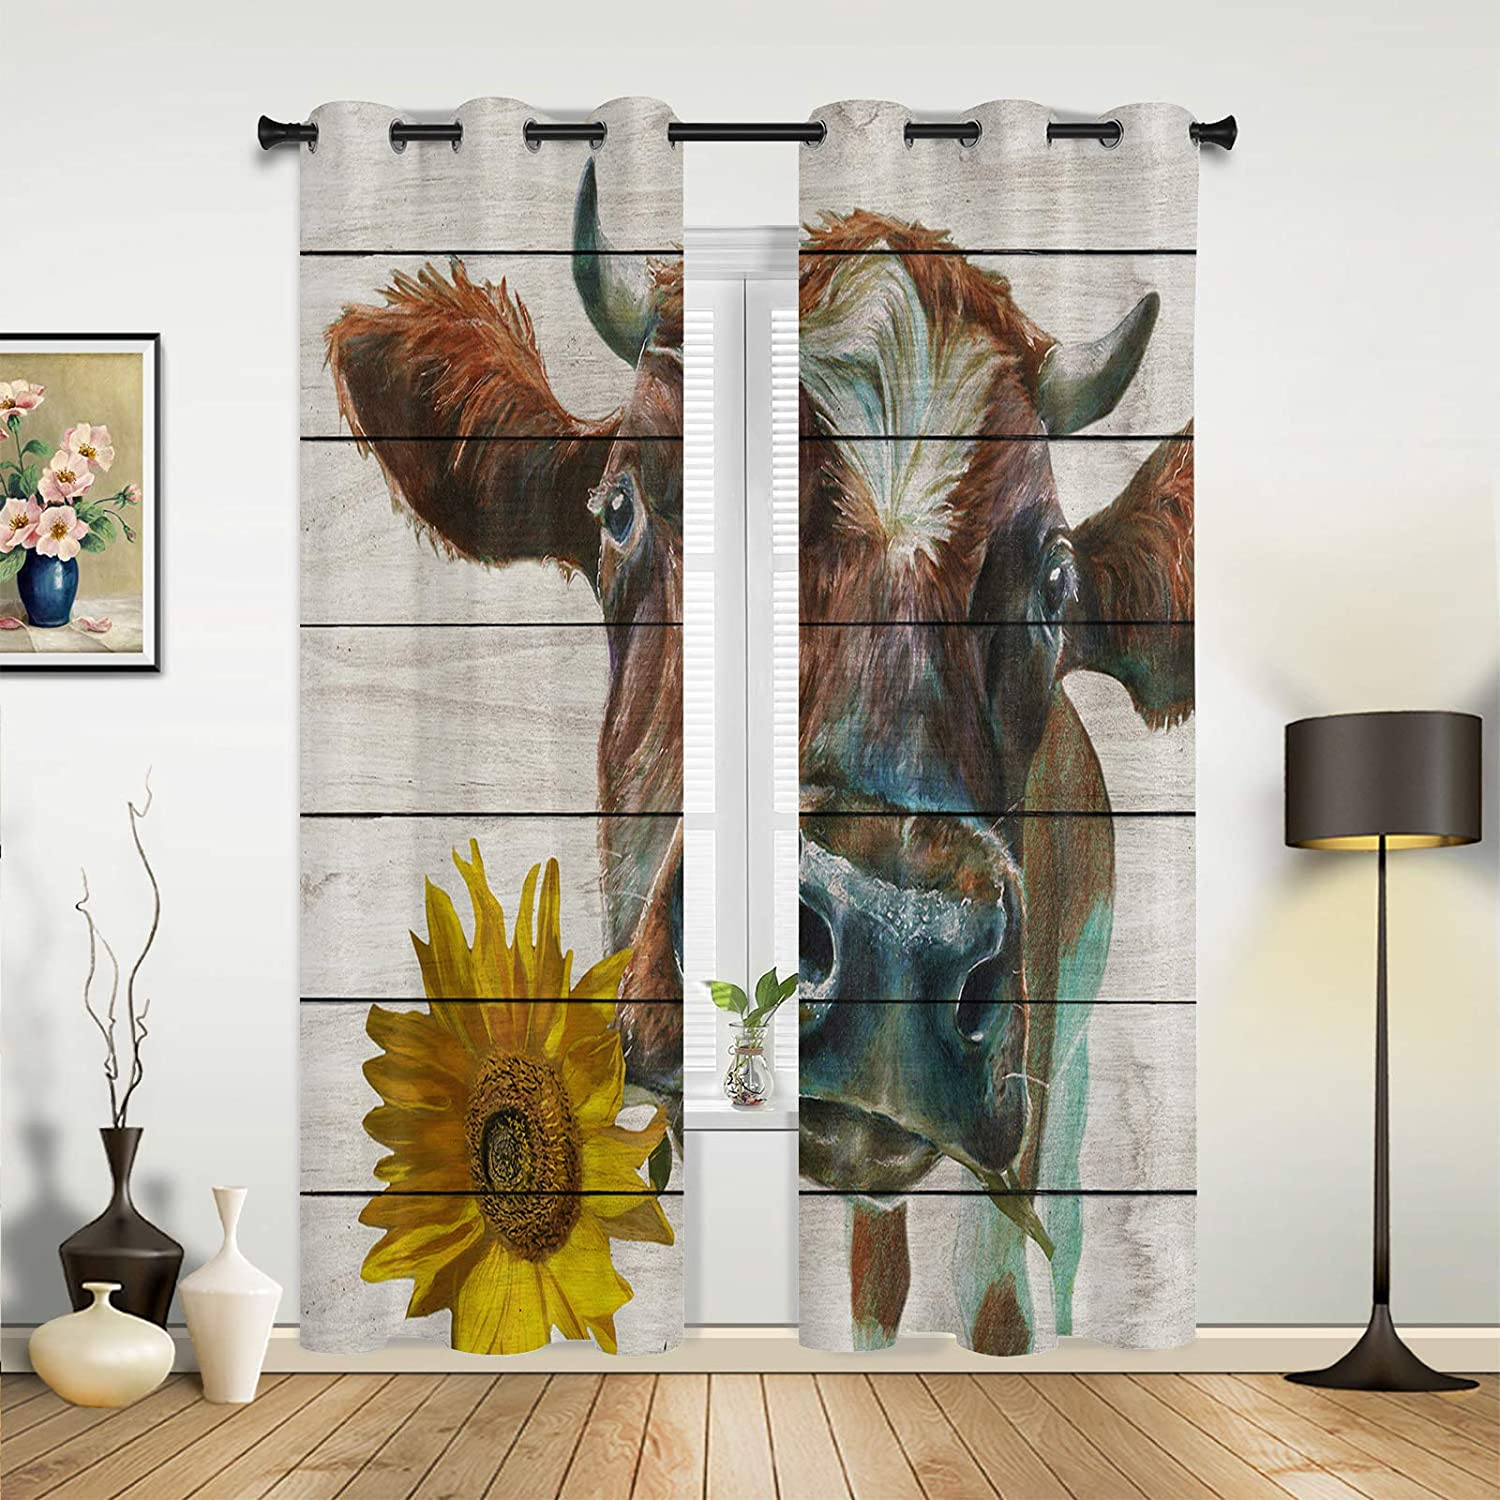 Window Gifts Sheer Curtains for Bedroom Manufacturer direct delivery Living Cow S Holding Room Farm